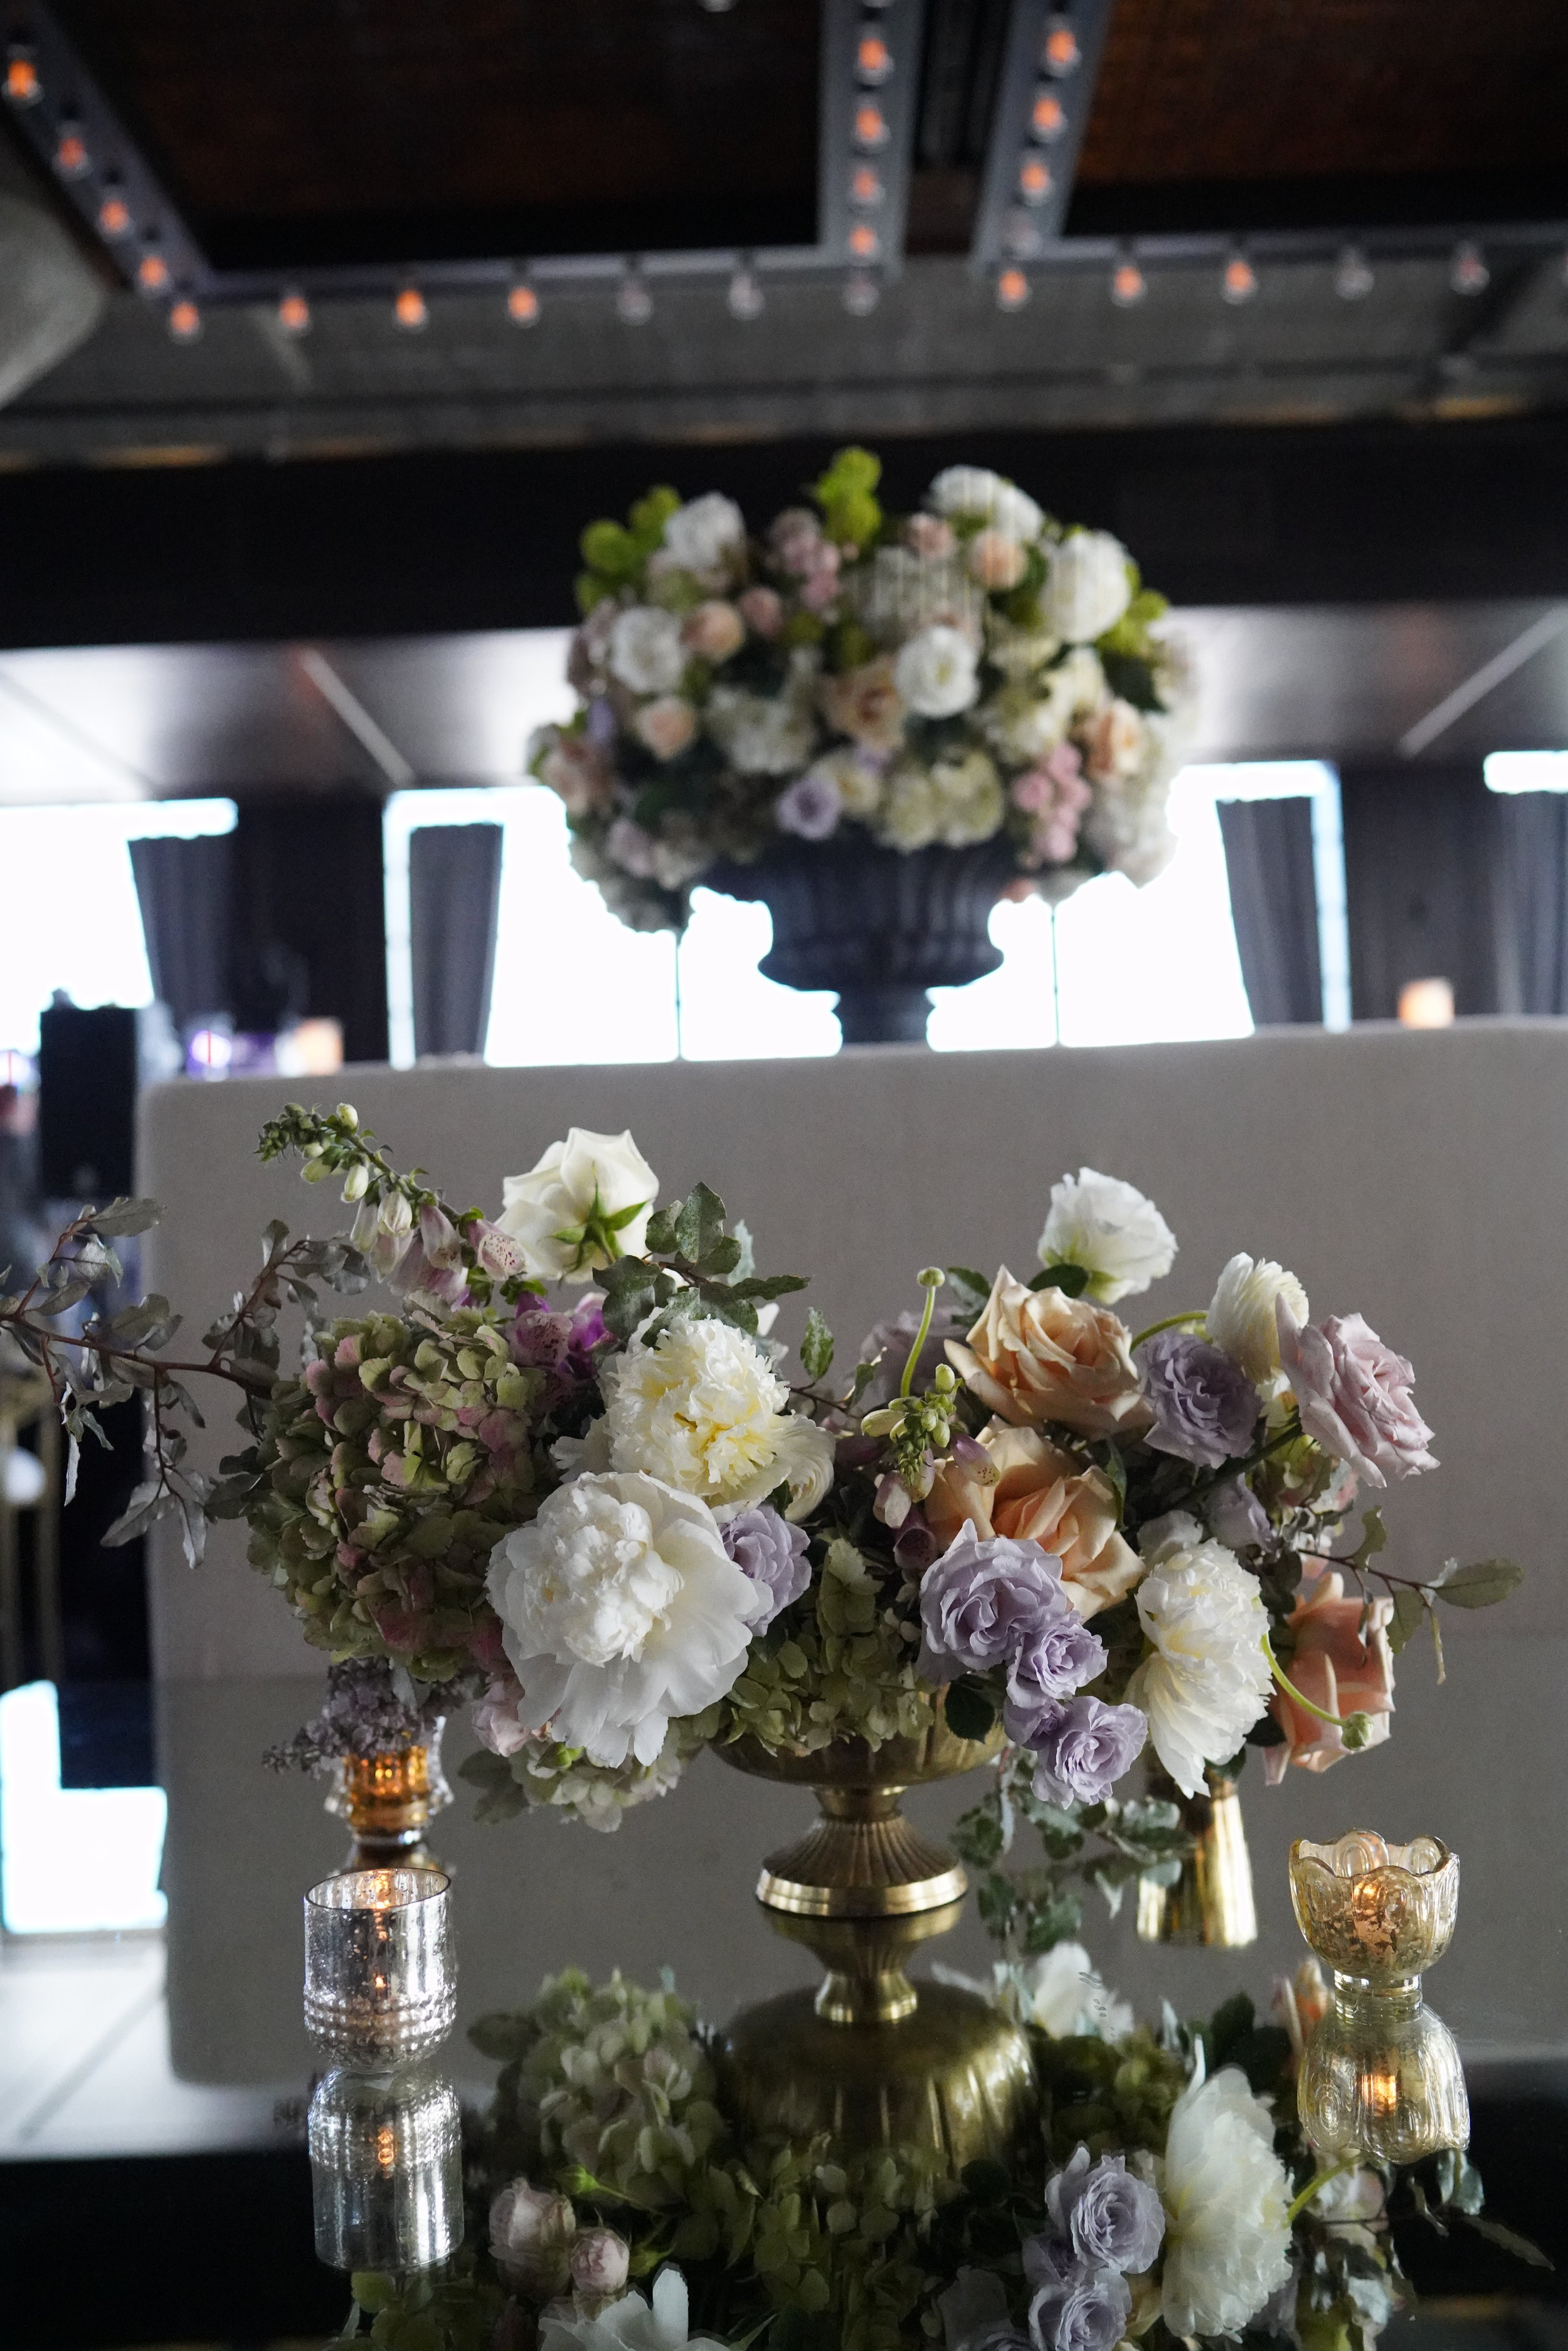 Compote-Large-Astorian-Wedding-Houston-Florist.JPG